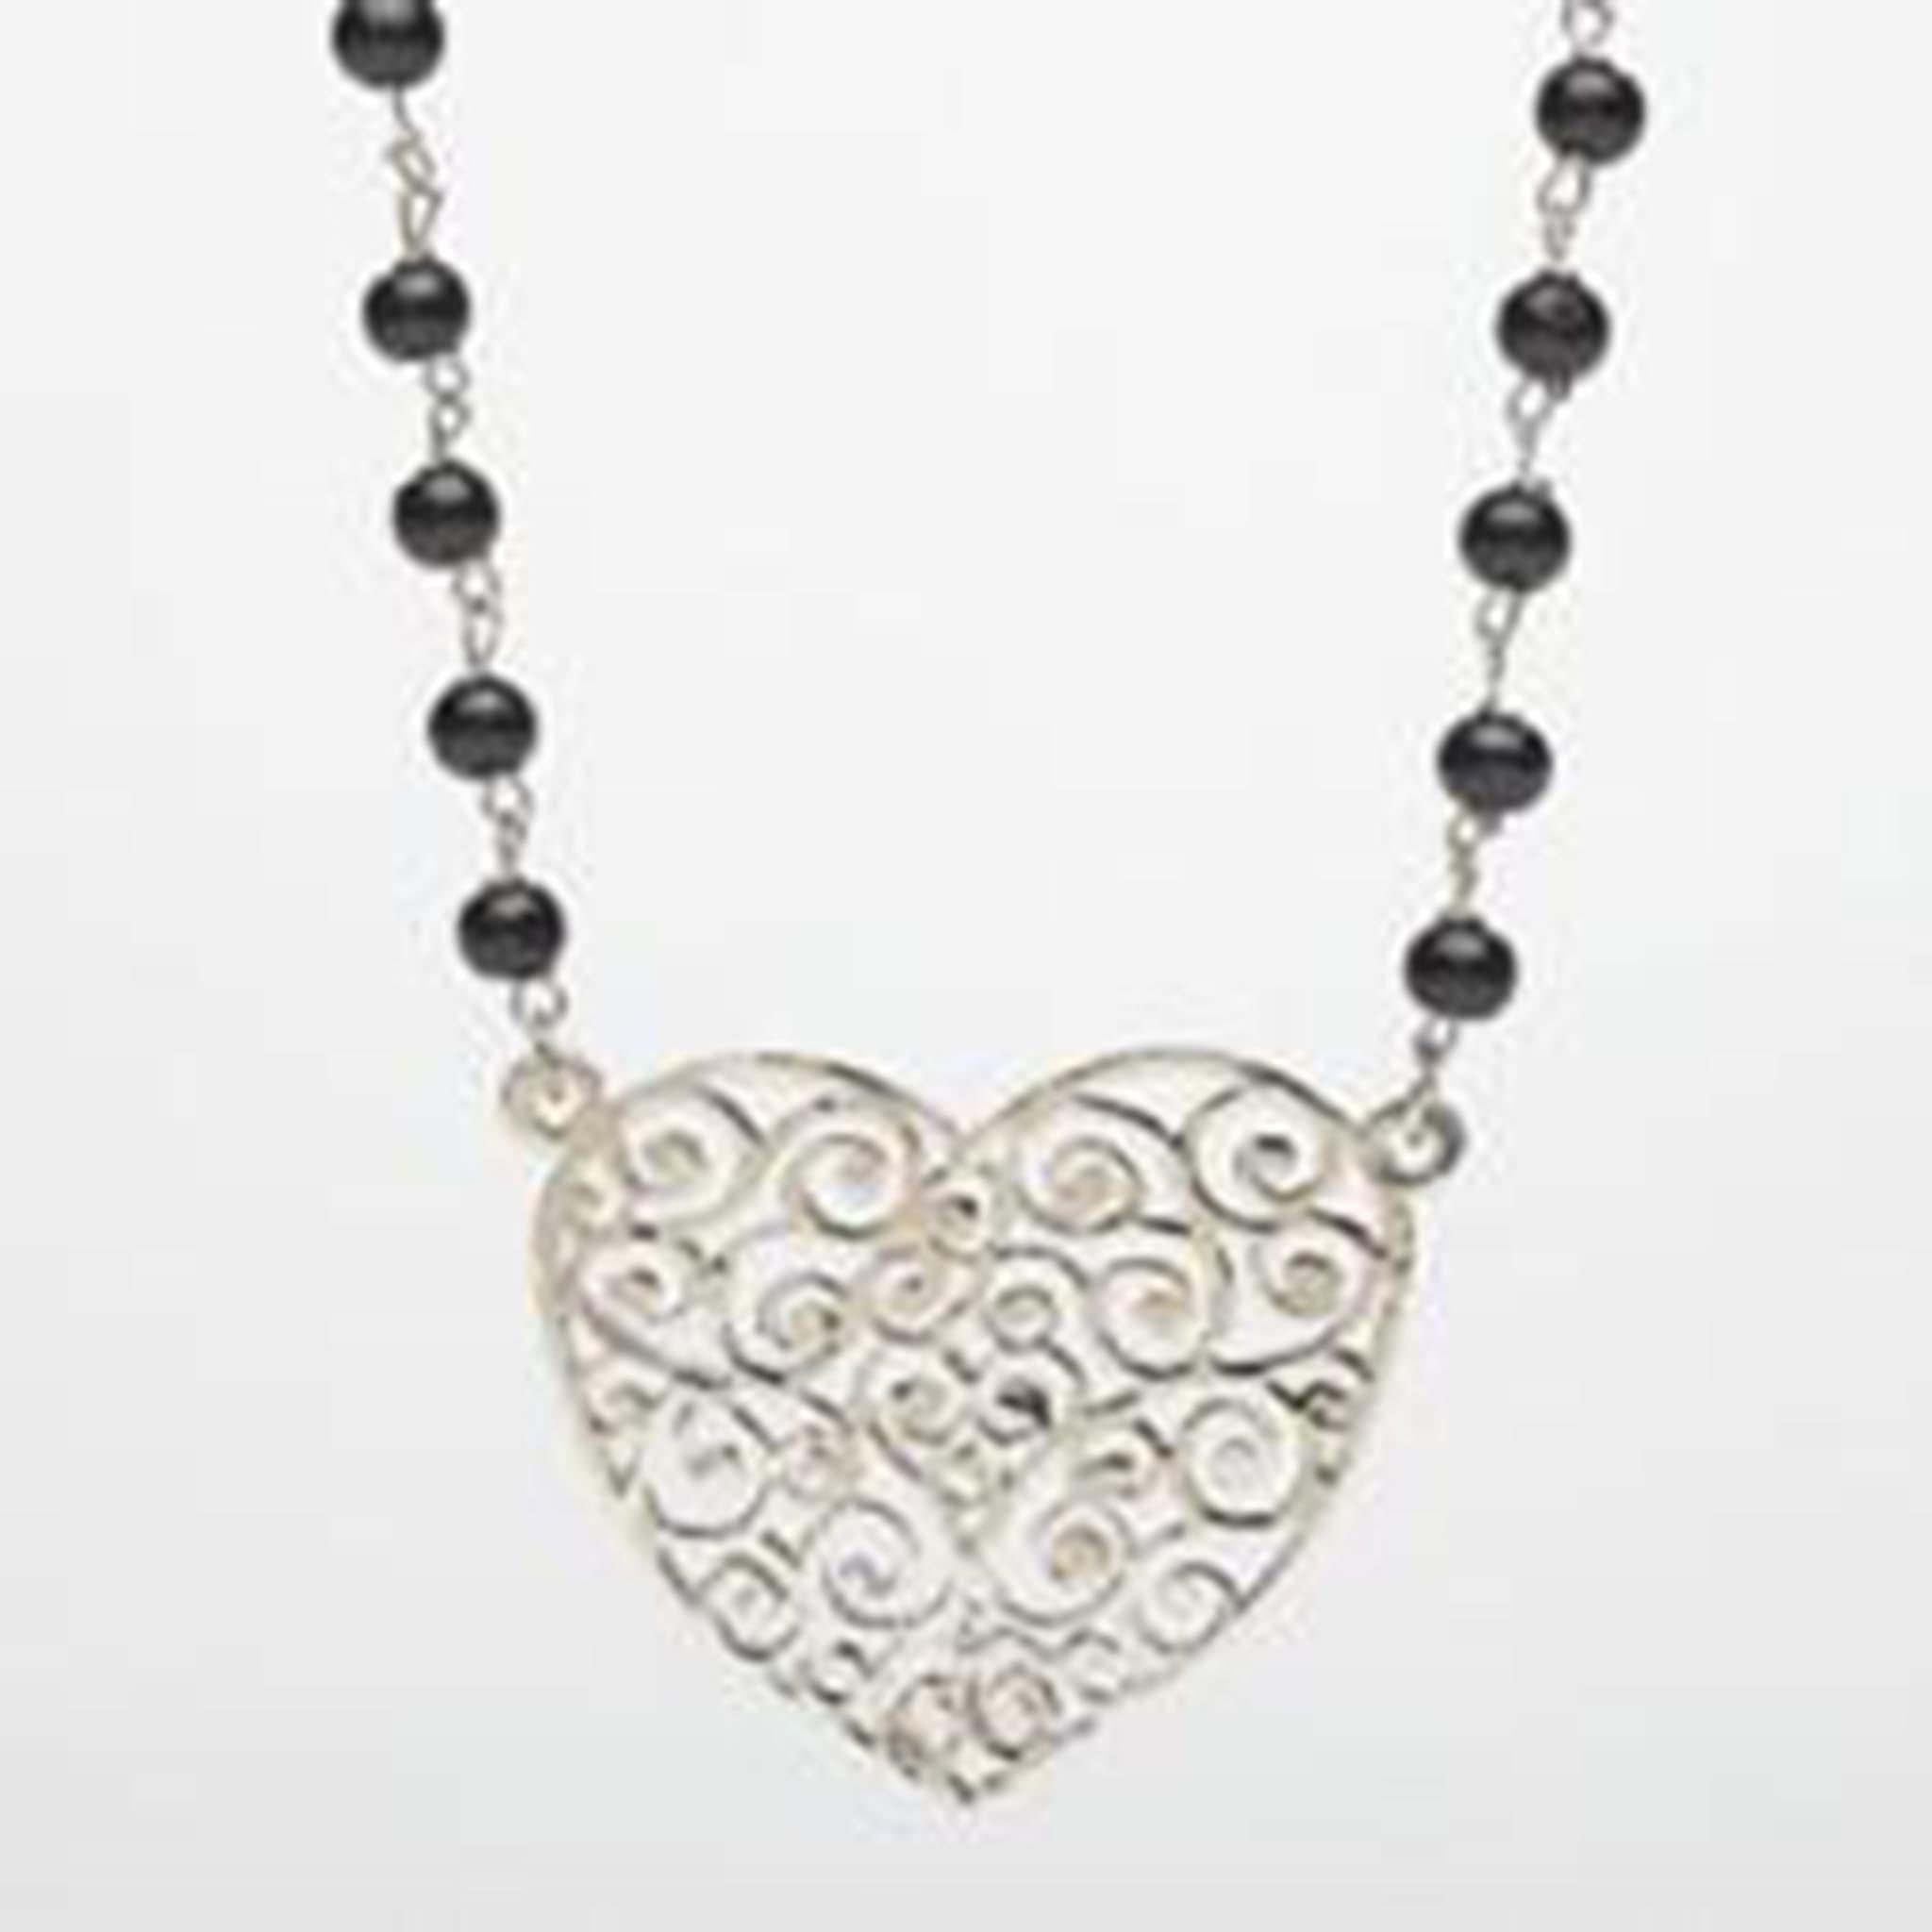 Chrome filigree heart pendant necklace rock rebel chrome filigree heart pendant necklace aloadofball Gallery